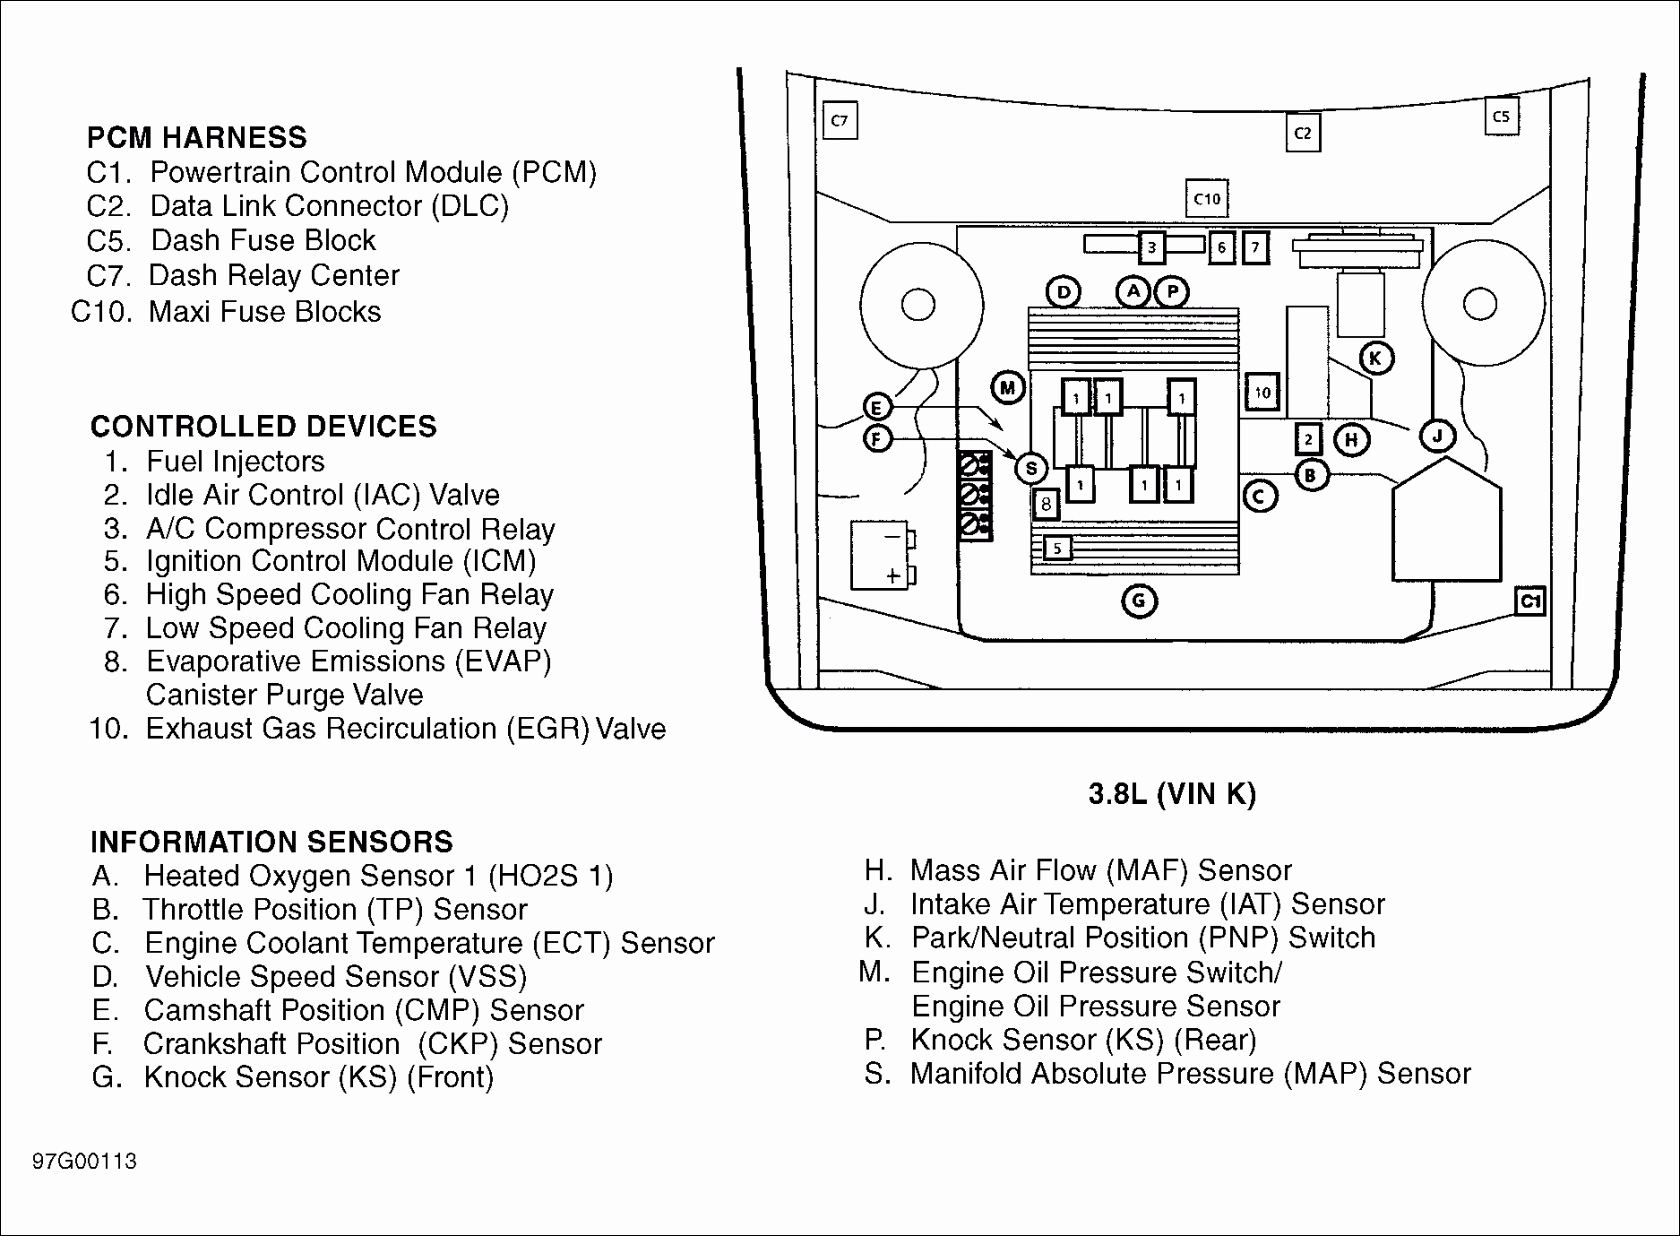 3 Position Ignition Switch Wiring Diagram | Free Wiring Diagram on well pressure tank plumbing diagram, water pump pressure switch diagram, oil pressure shut off switch, oil burner wiring diagram, oil pressure sending unit wiring, oil pressure sensor diagram, oil sending unit location isuzu trooper, oil pressure switch connector, oil pressure switch sensor, oil temperature sensor 2007 dodge charger, oil relay switch, 2 prong pressure switch diagram, oil pressure troubleshooting, oil pumps for thermoregulators, well pressure switch diagram, oil pump pressure gauge, oil pump wiring diagram, oil light wiring diagram, oil pressure sender switch schematic, oil heater wiring diagram,